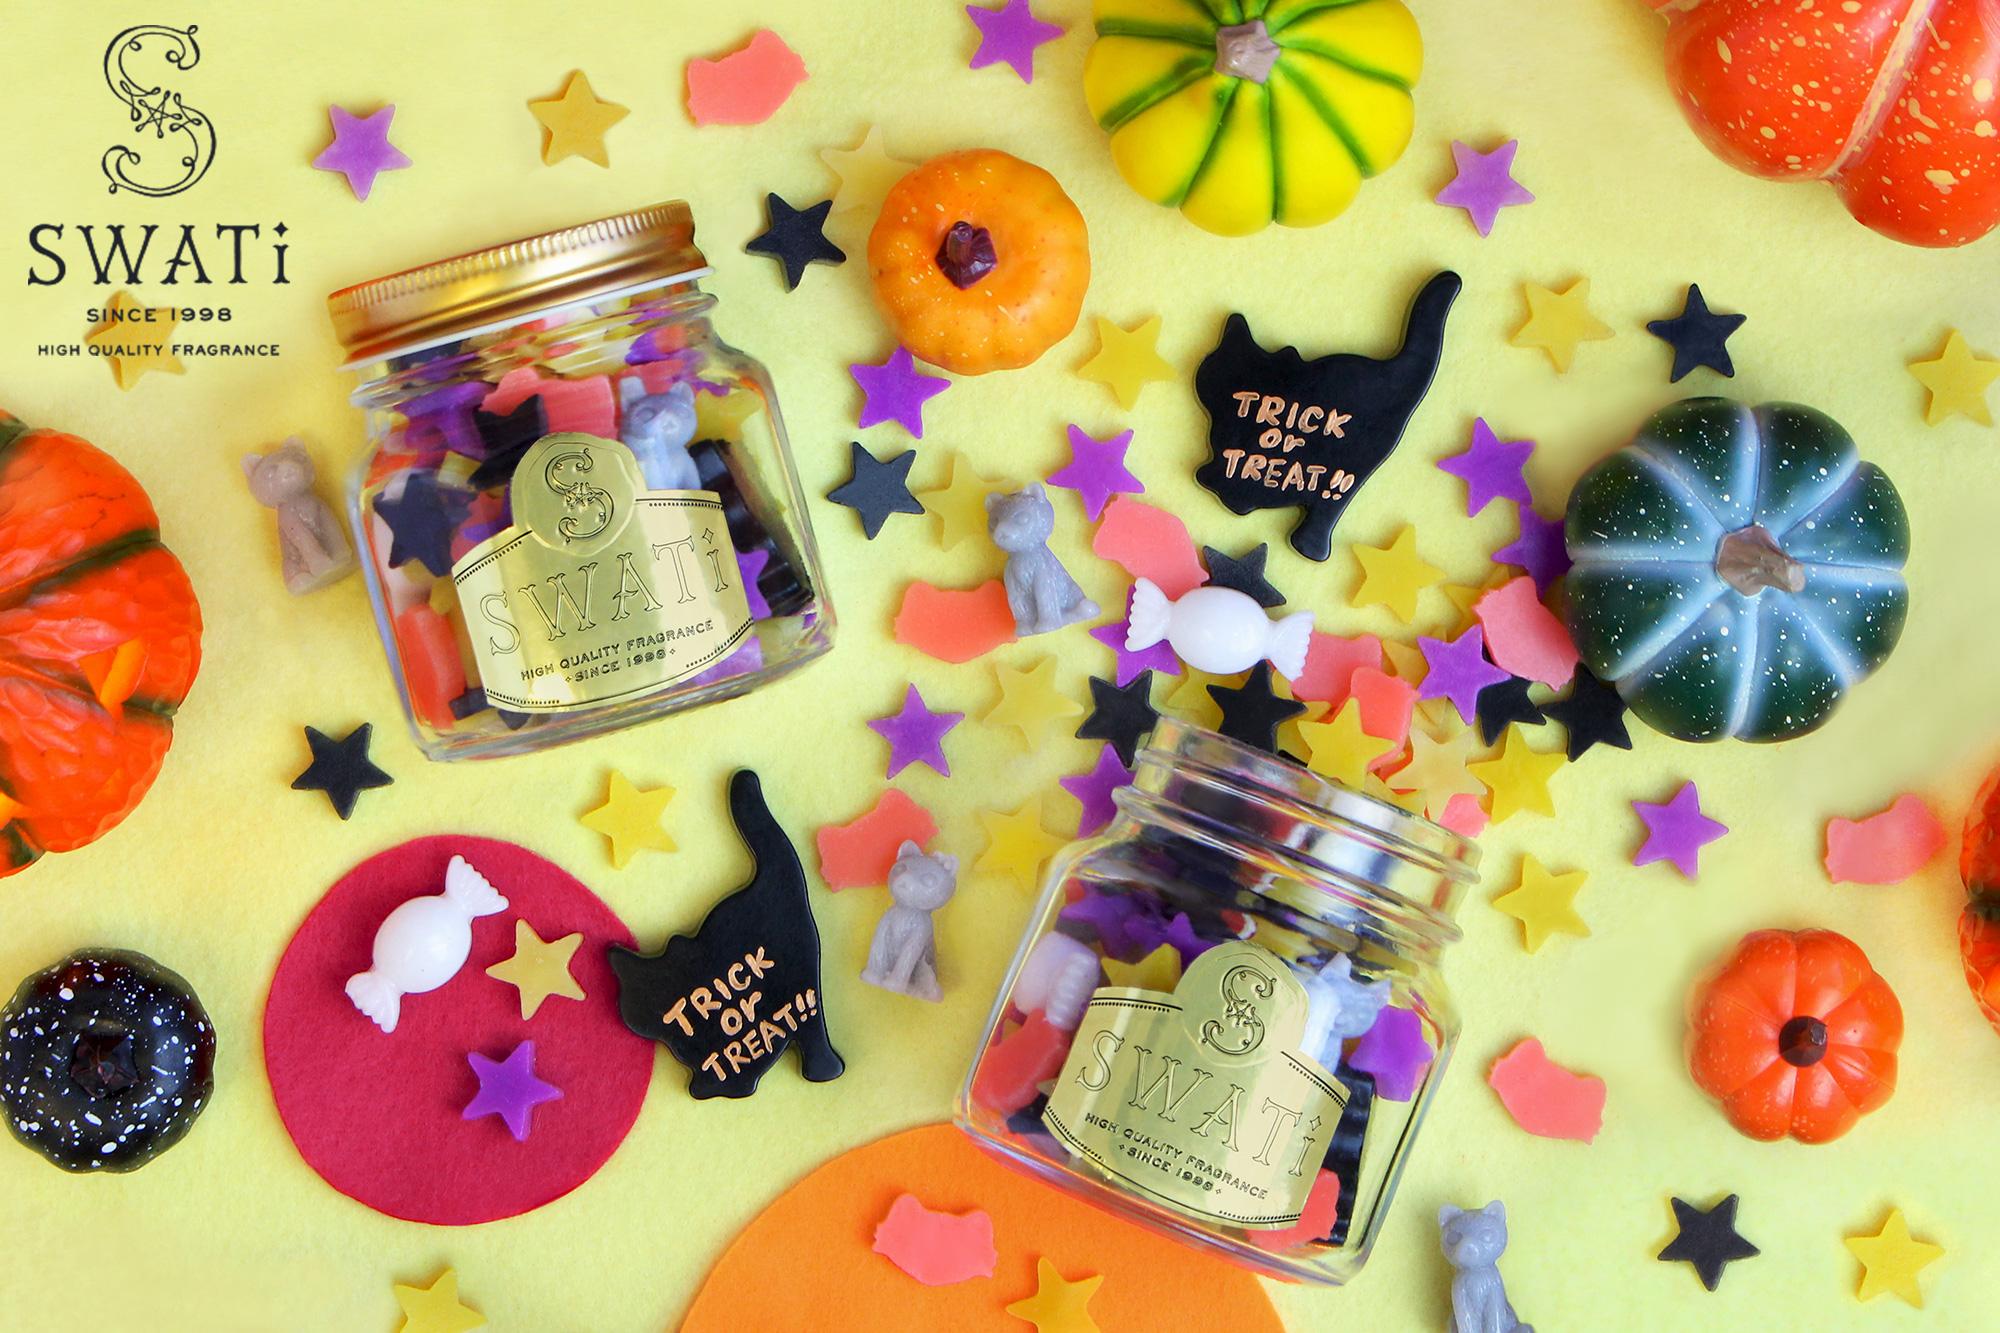 【OFFICIAL STORE限定】コンペイトウキャンドル~Month~ Trick or Treat